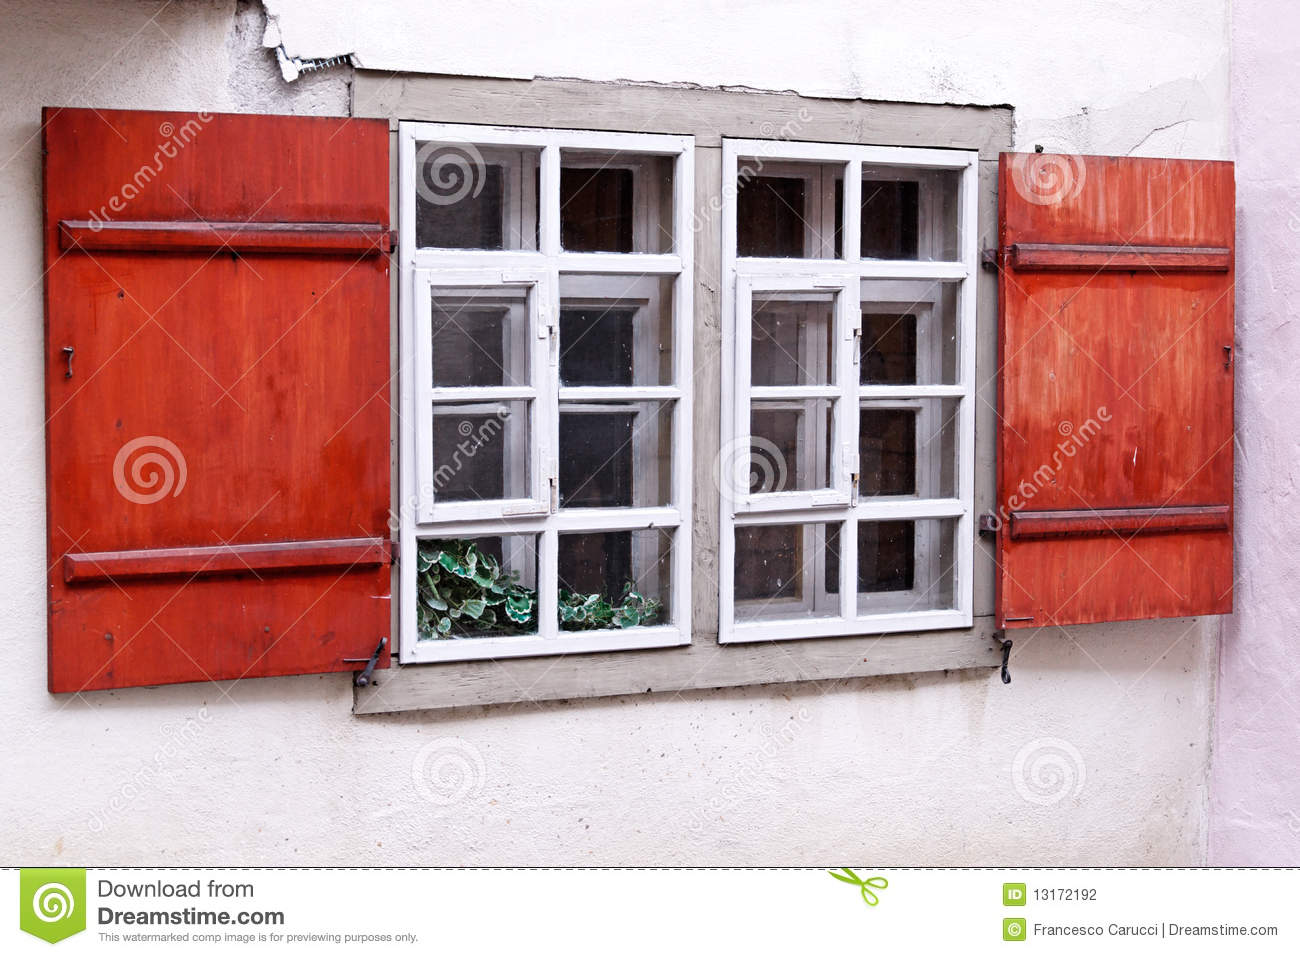 German window stock photography image 13172192 for Window in german